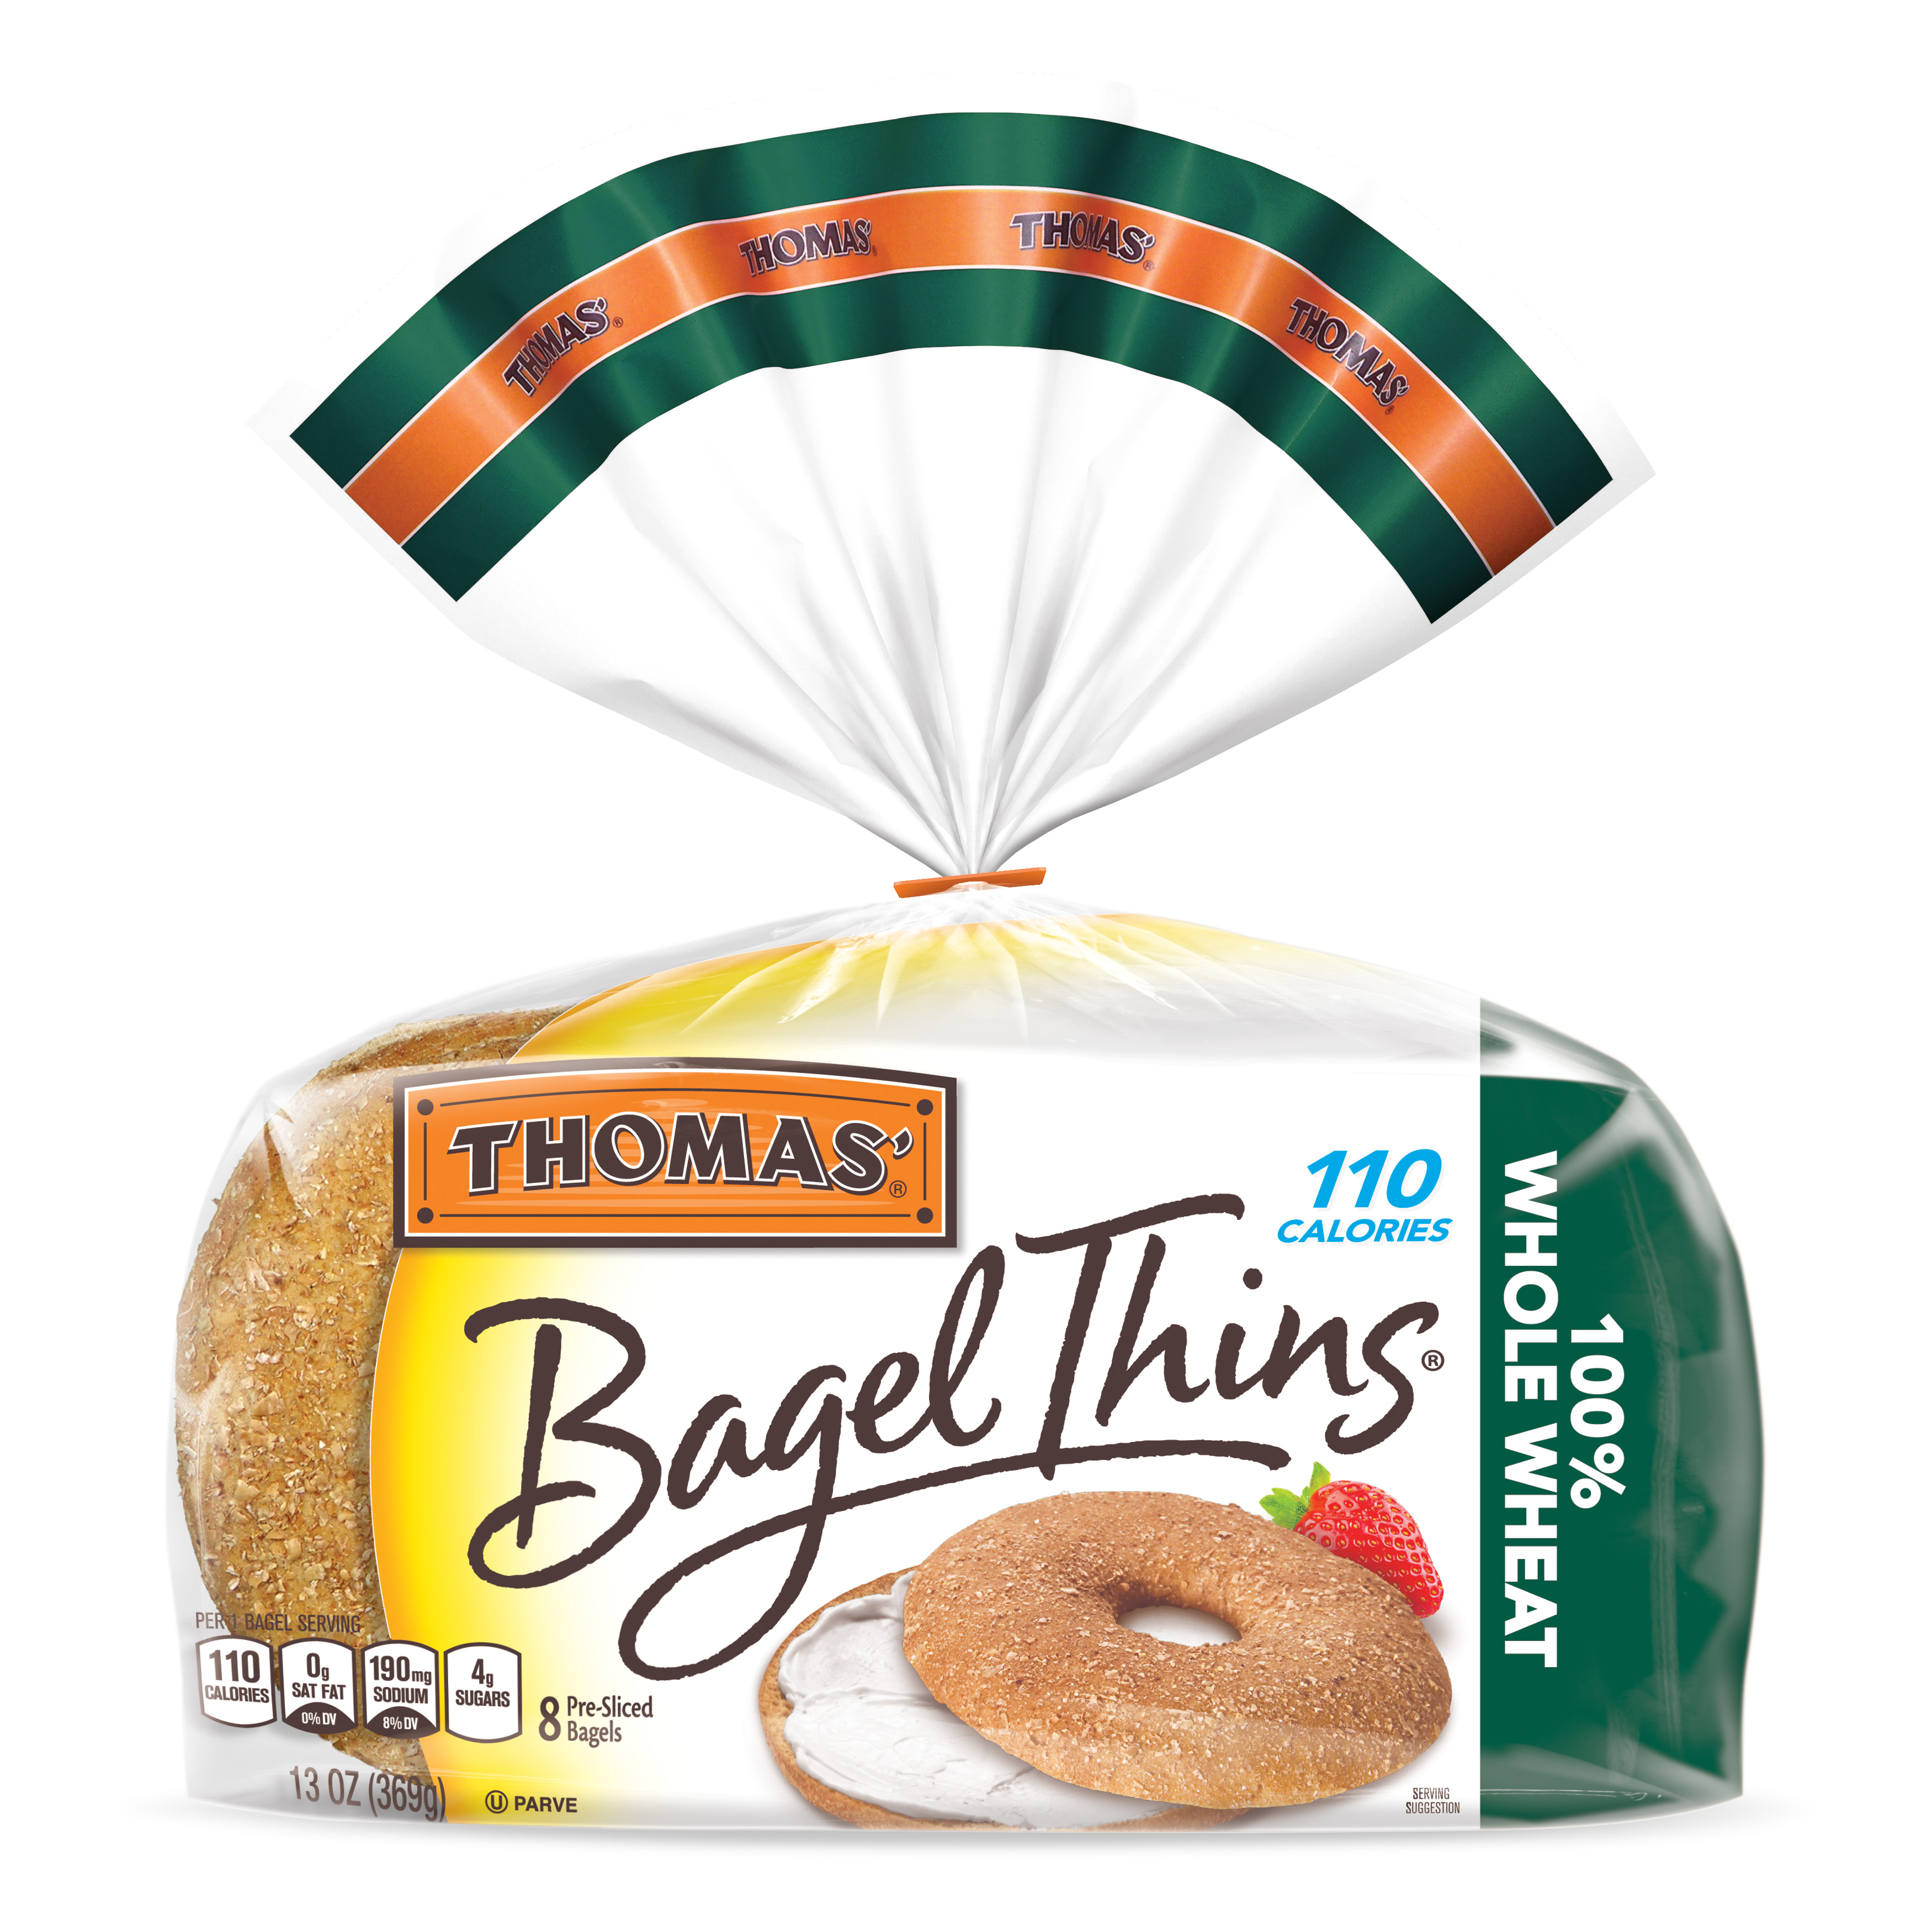 Thomas' Whole Wheat Bagel Thins, Only 110 Calories, 8 count, 13 oz